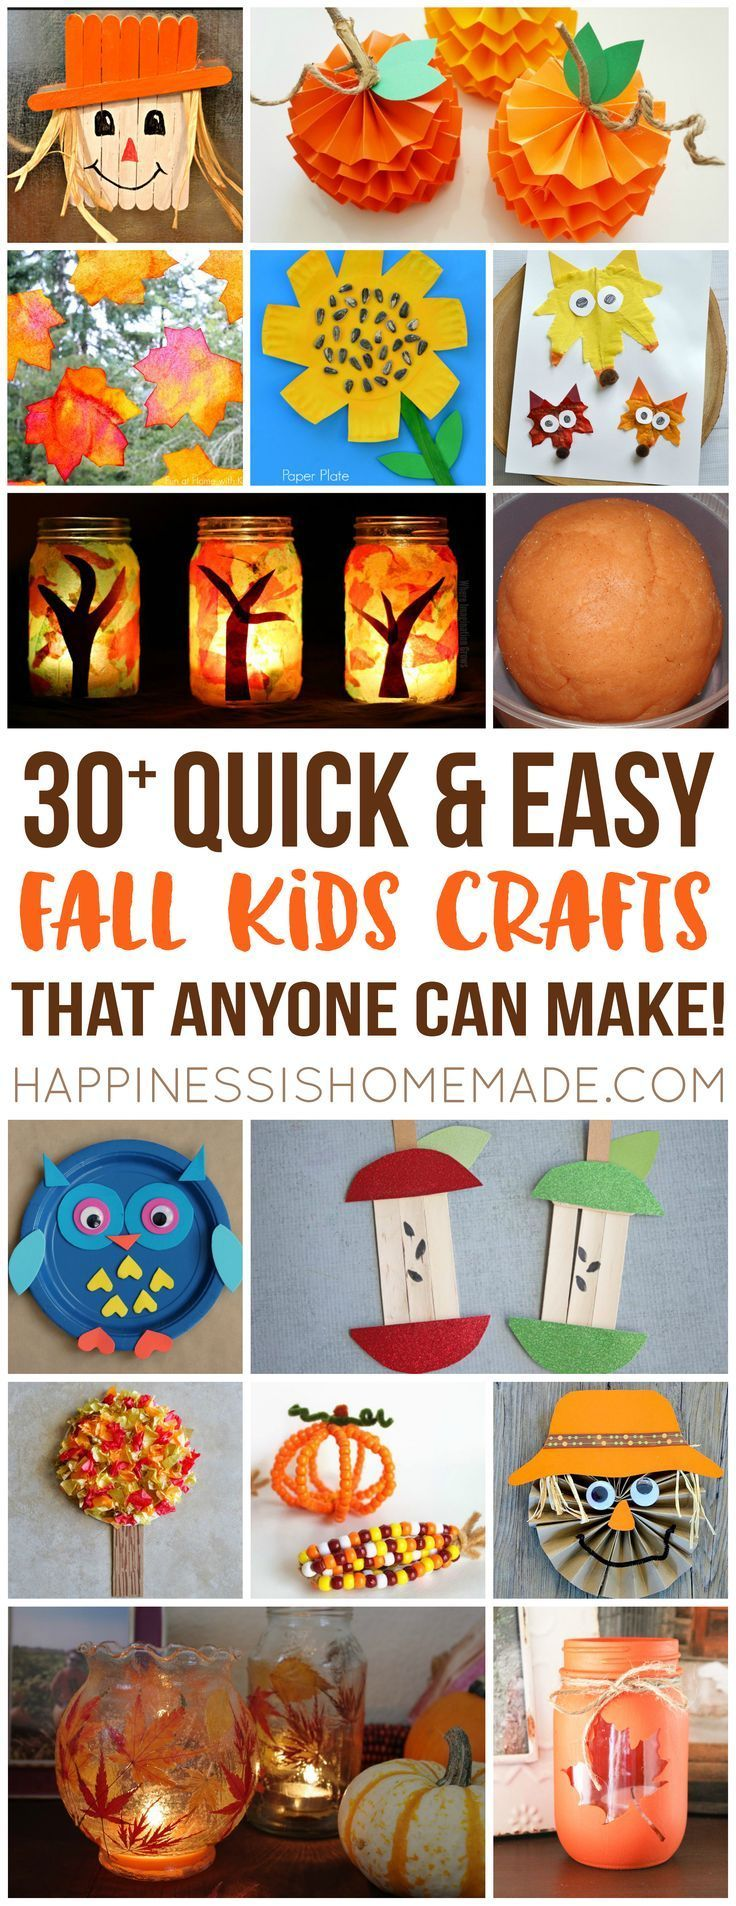 easy fall kids crafts that anyone can make - Halloween Crafts For Preschoolers Easy